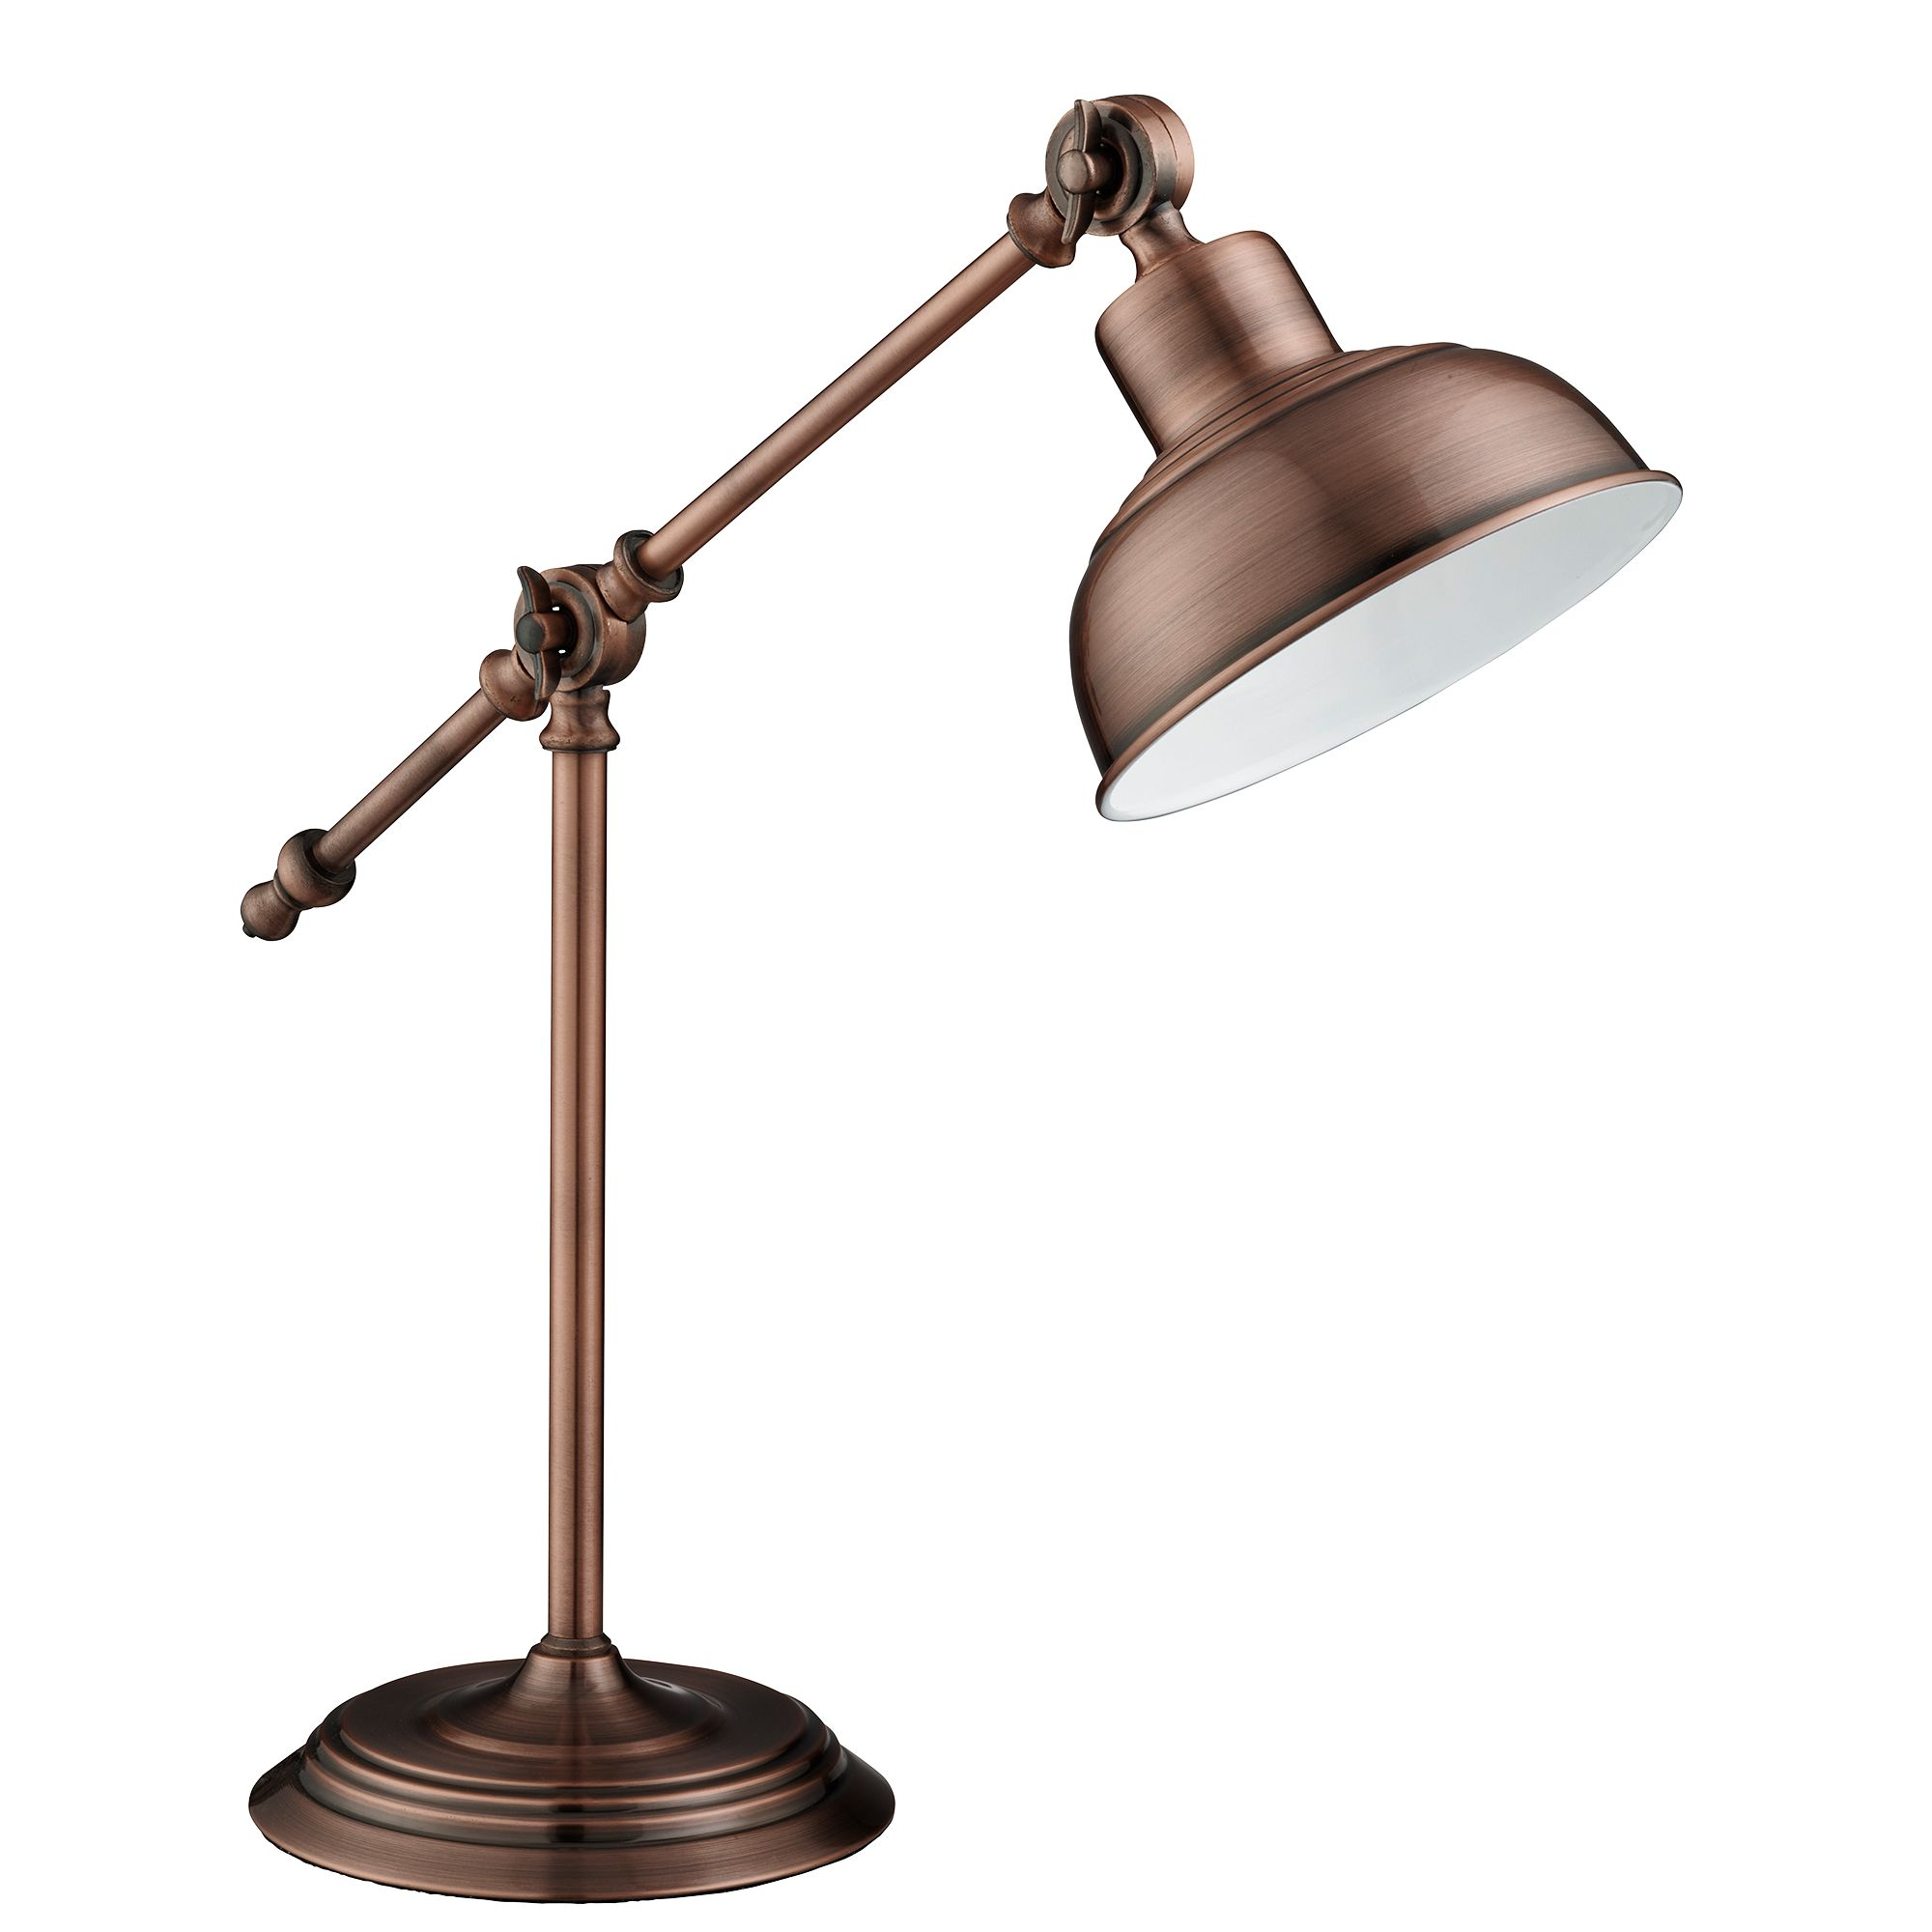 Macbeth Industrial Adjustable Table Lamp, Antique Copper